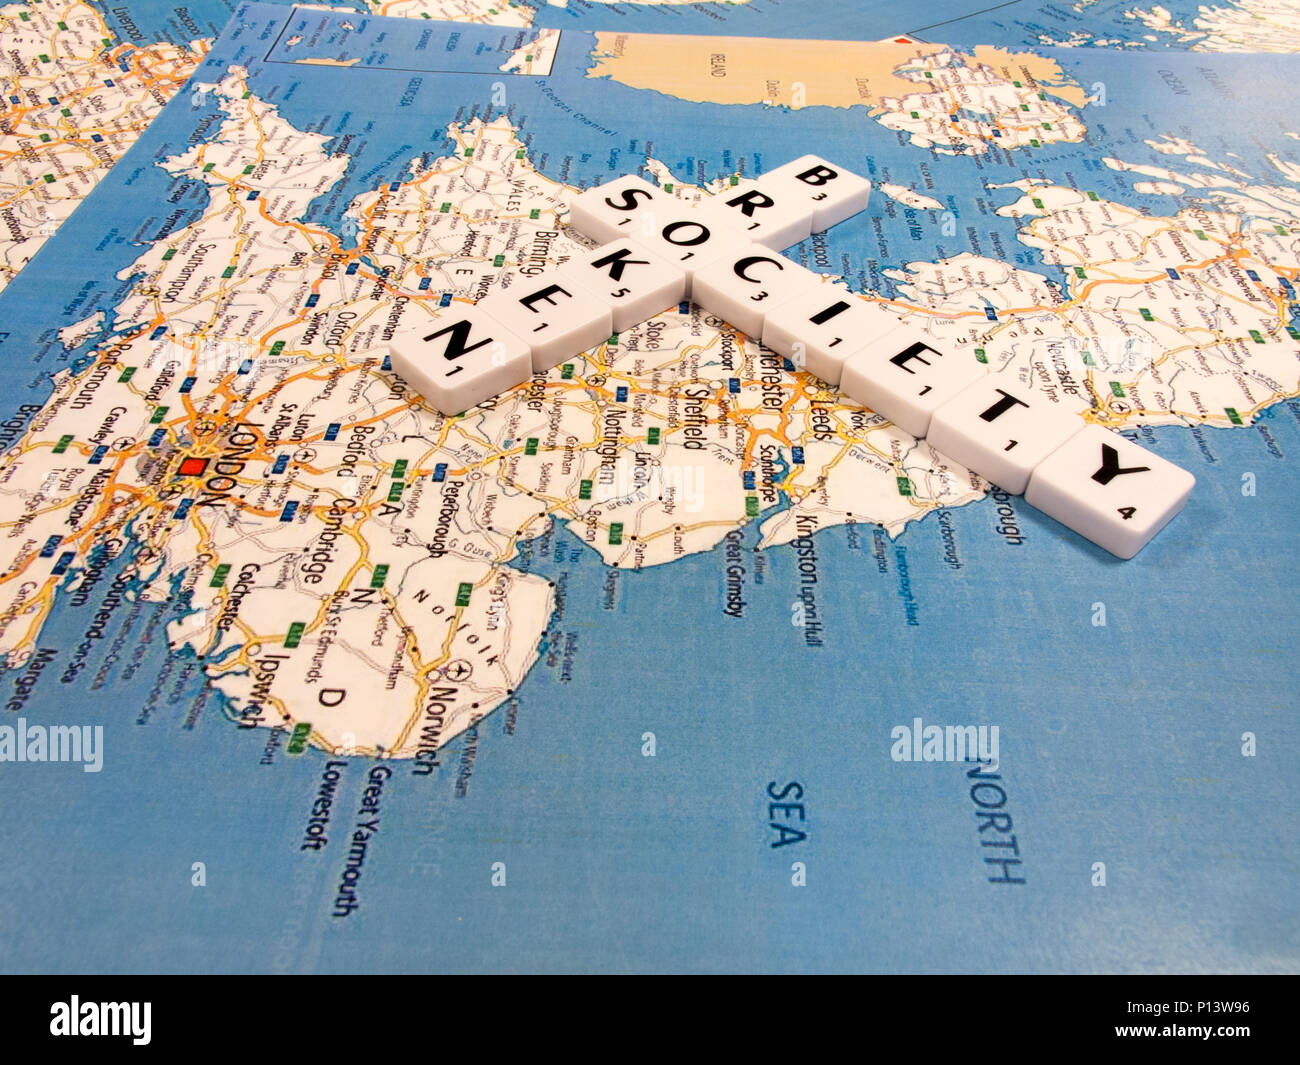 representation of broken society, a perceived or apparent general decline in moral values, with United Kingdom map background - Stock Image